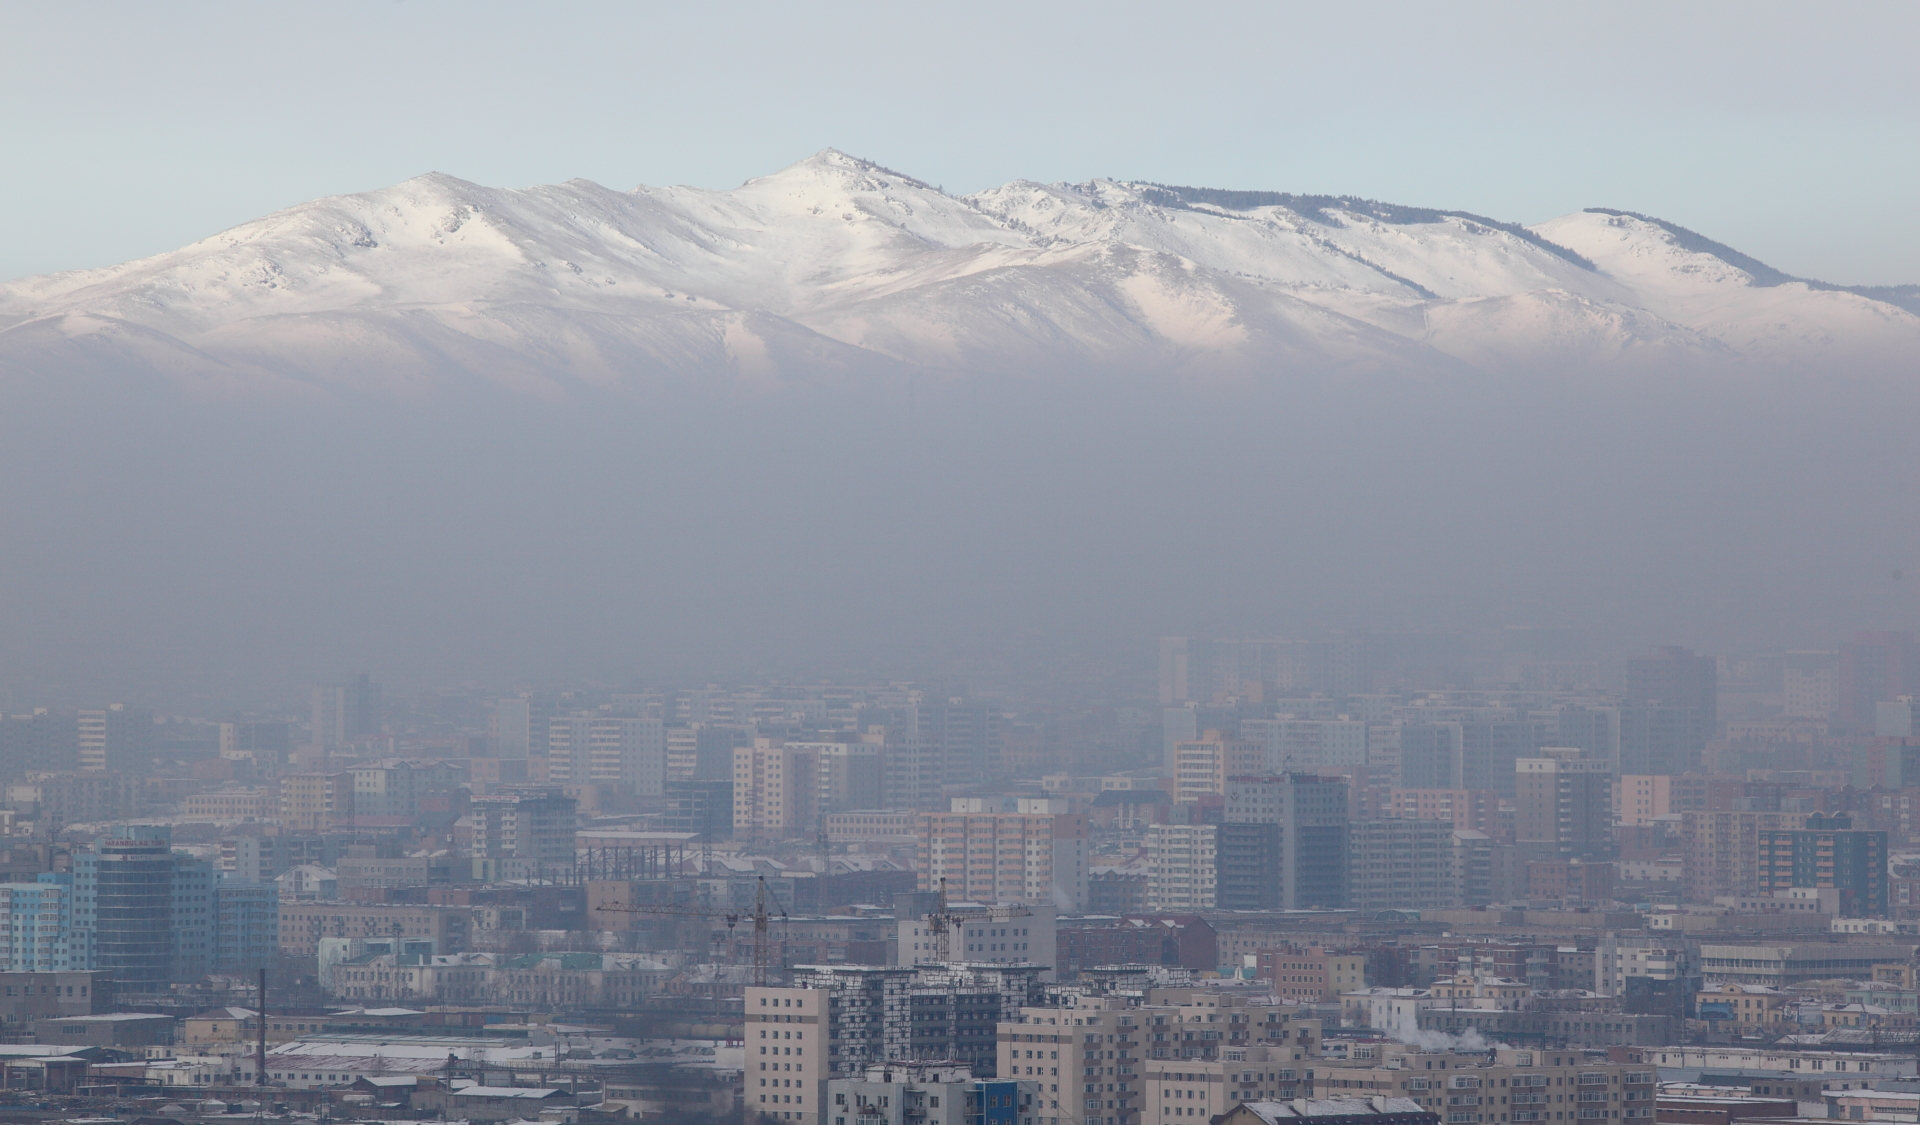 Air pollution over UB. Photo courtesy of: https://www.flickr.com/photos/wild_speedy/5520138414/in/photostream/